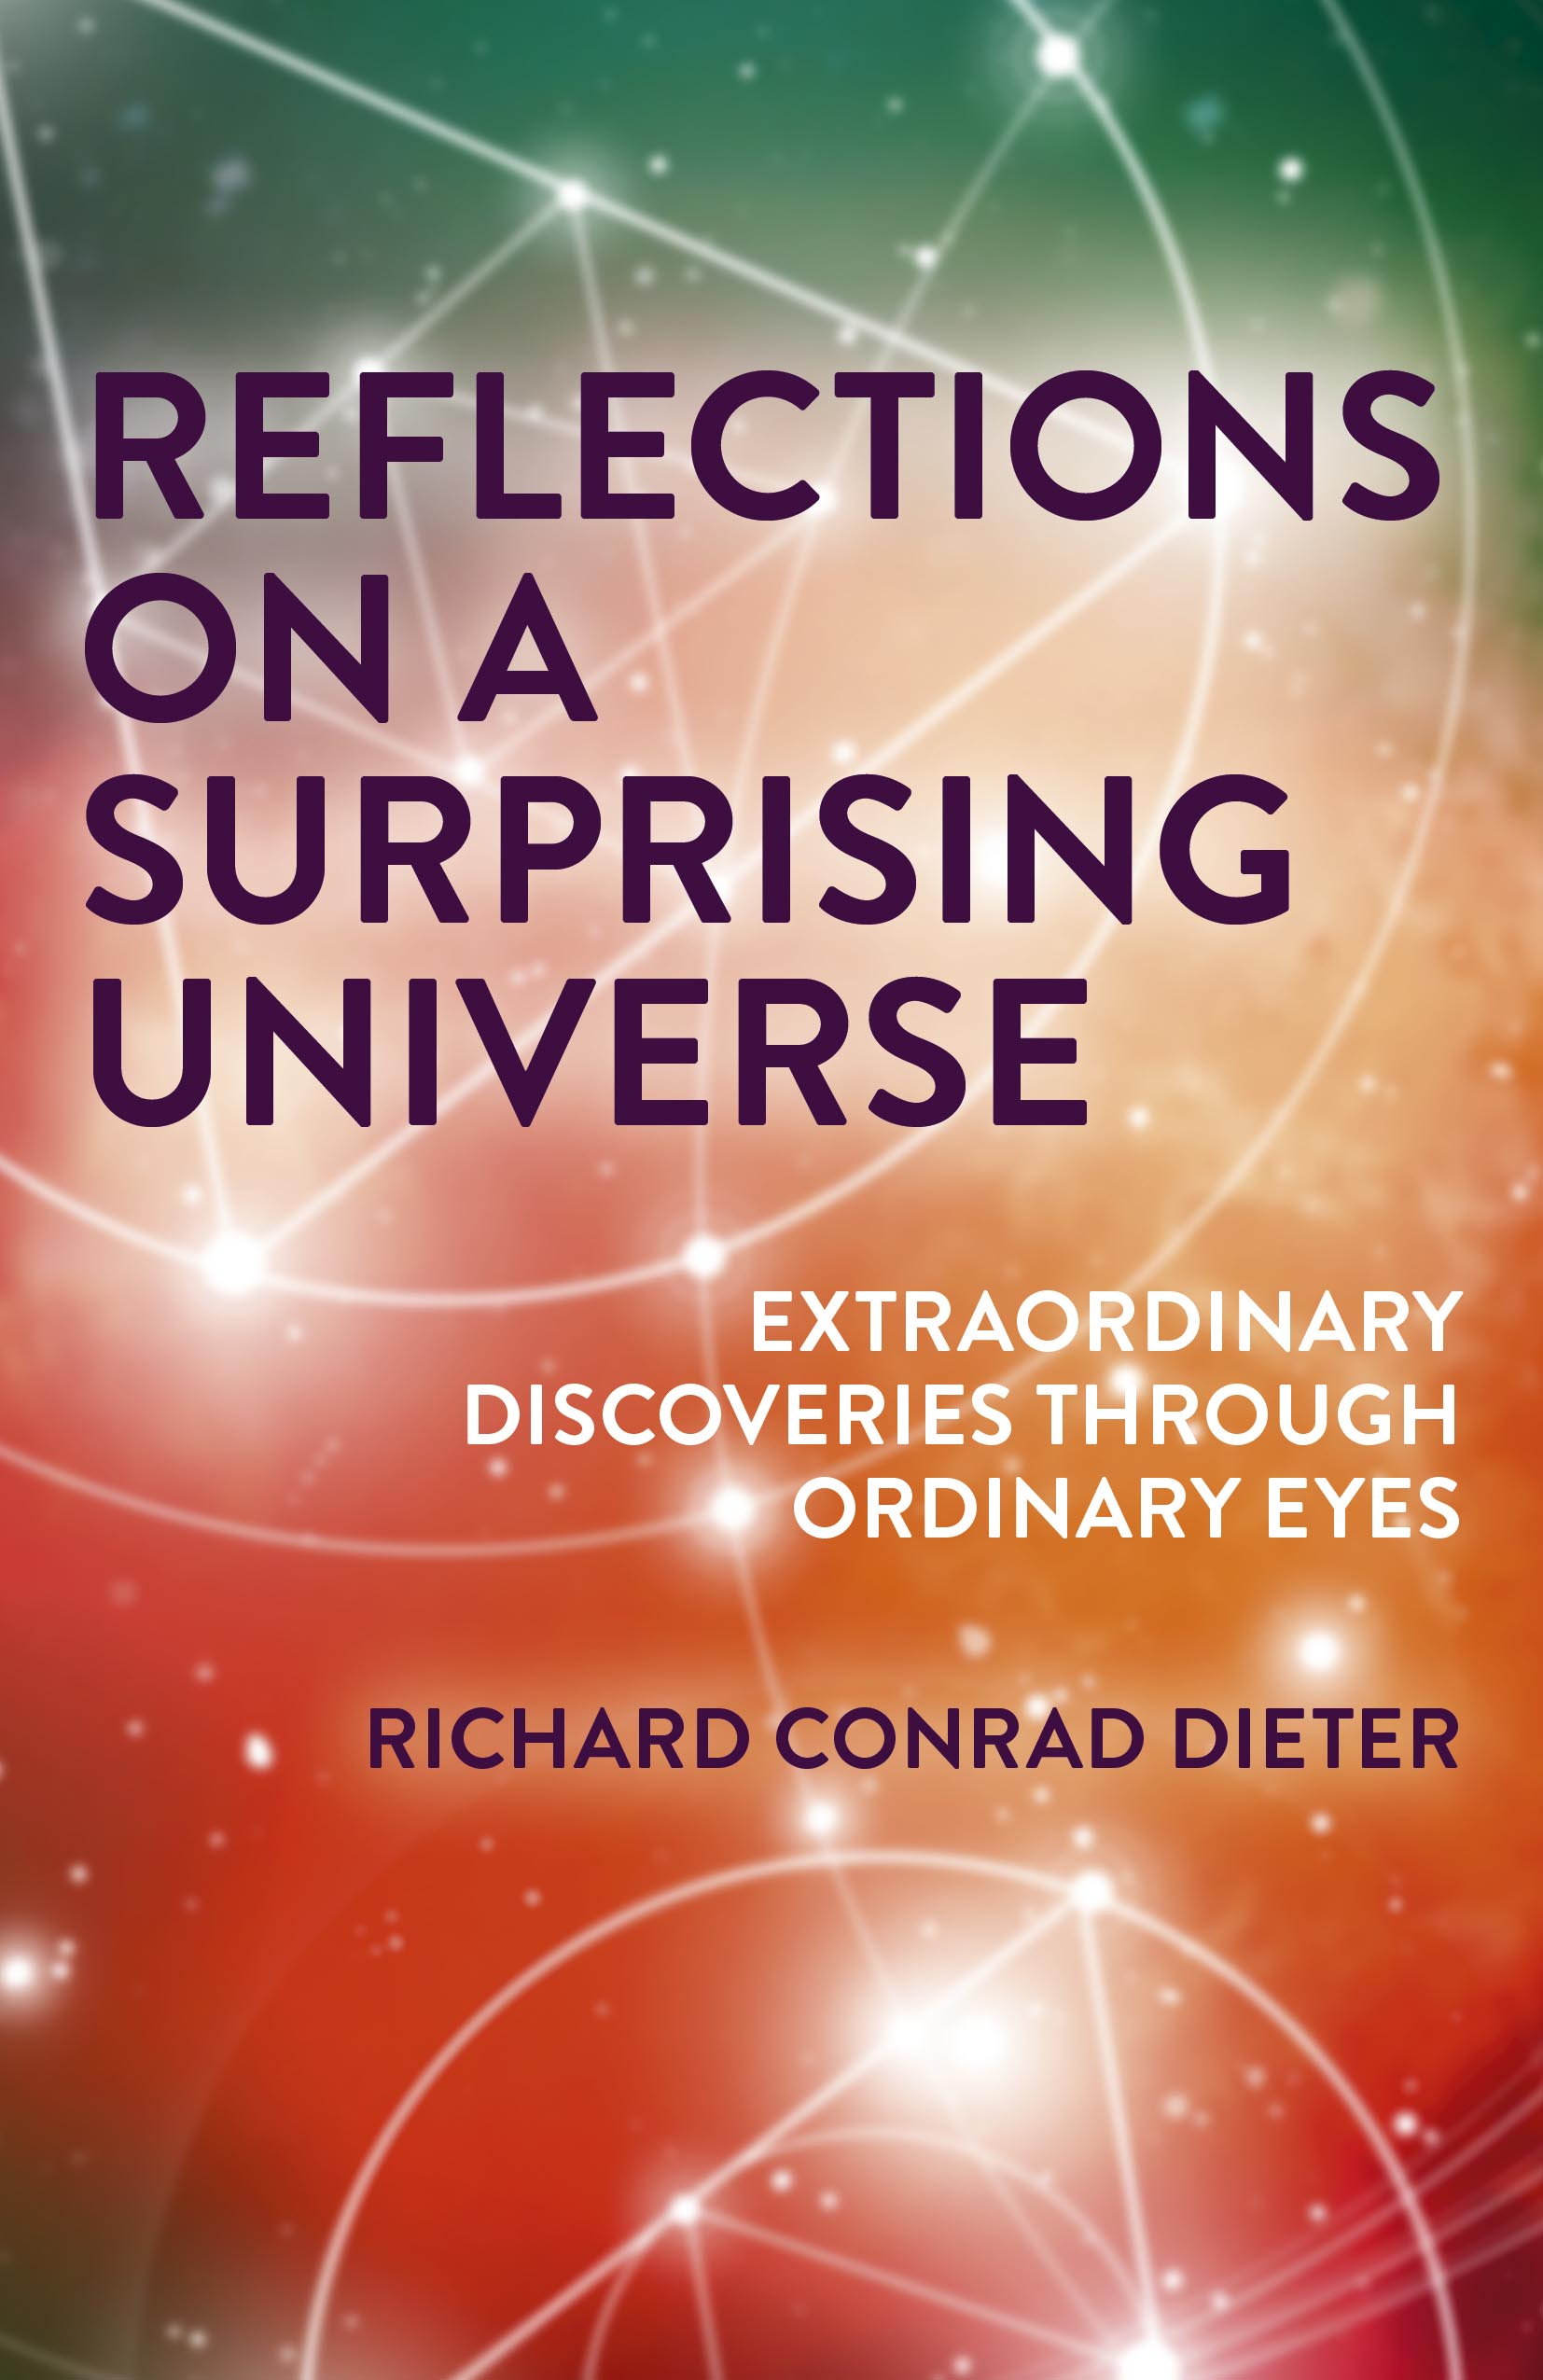 Reflections on a Surprising Universe